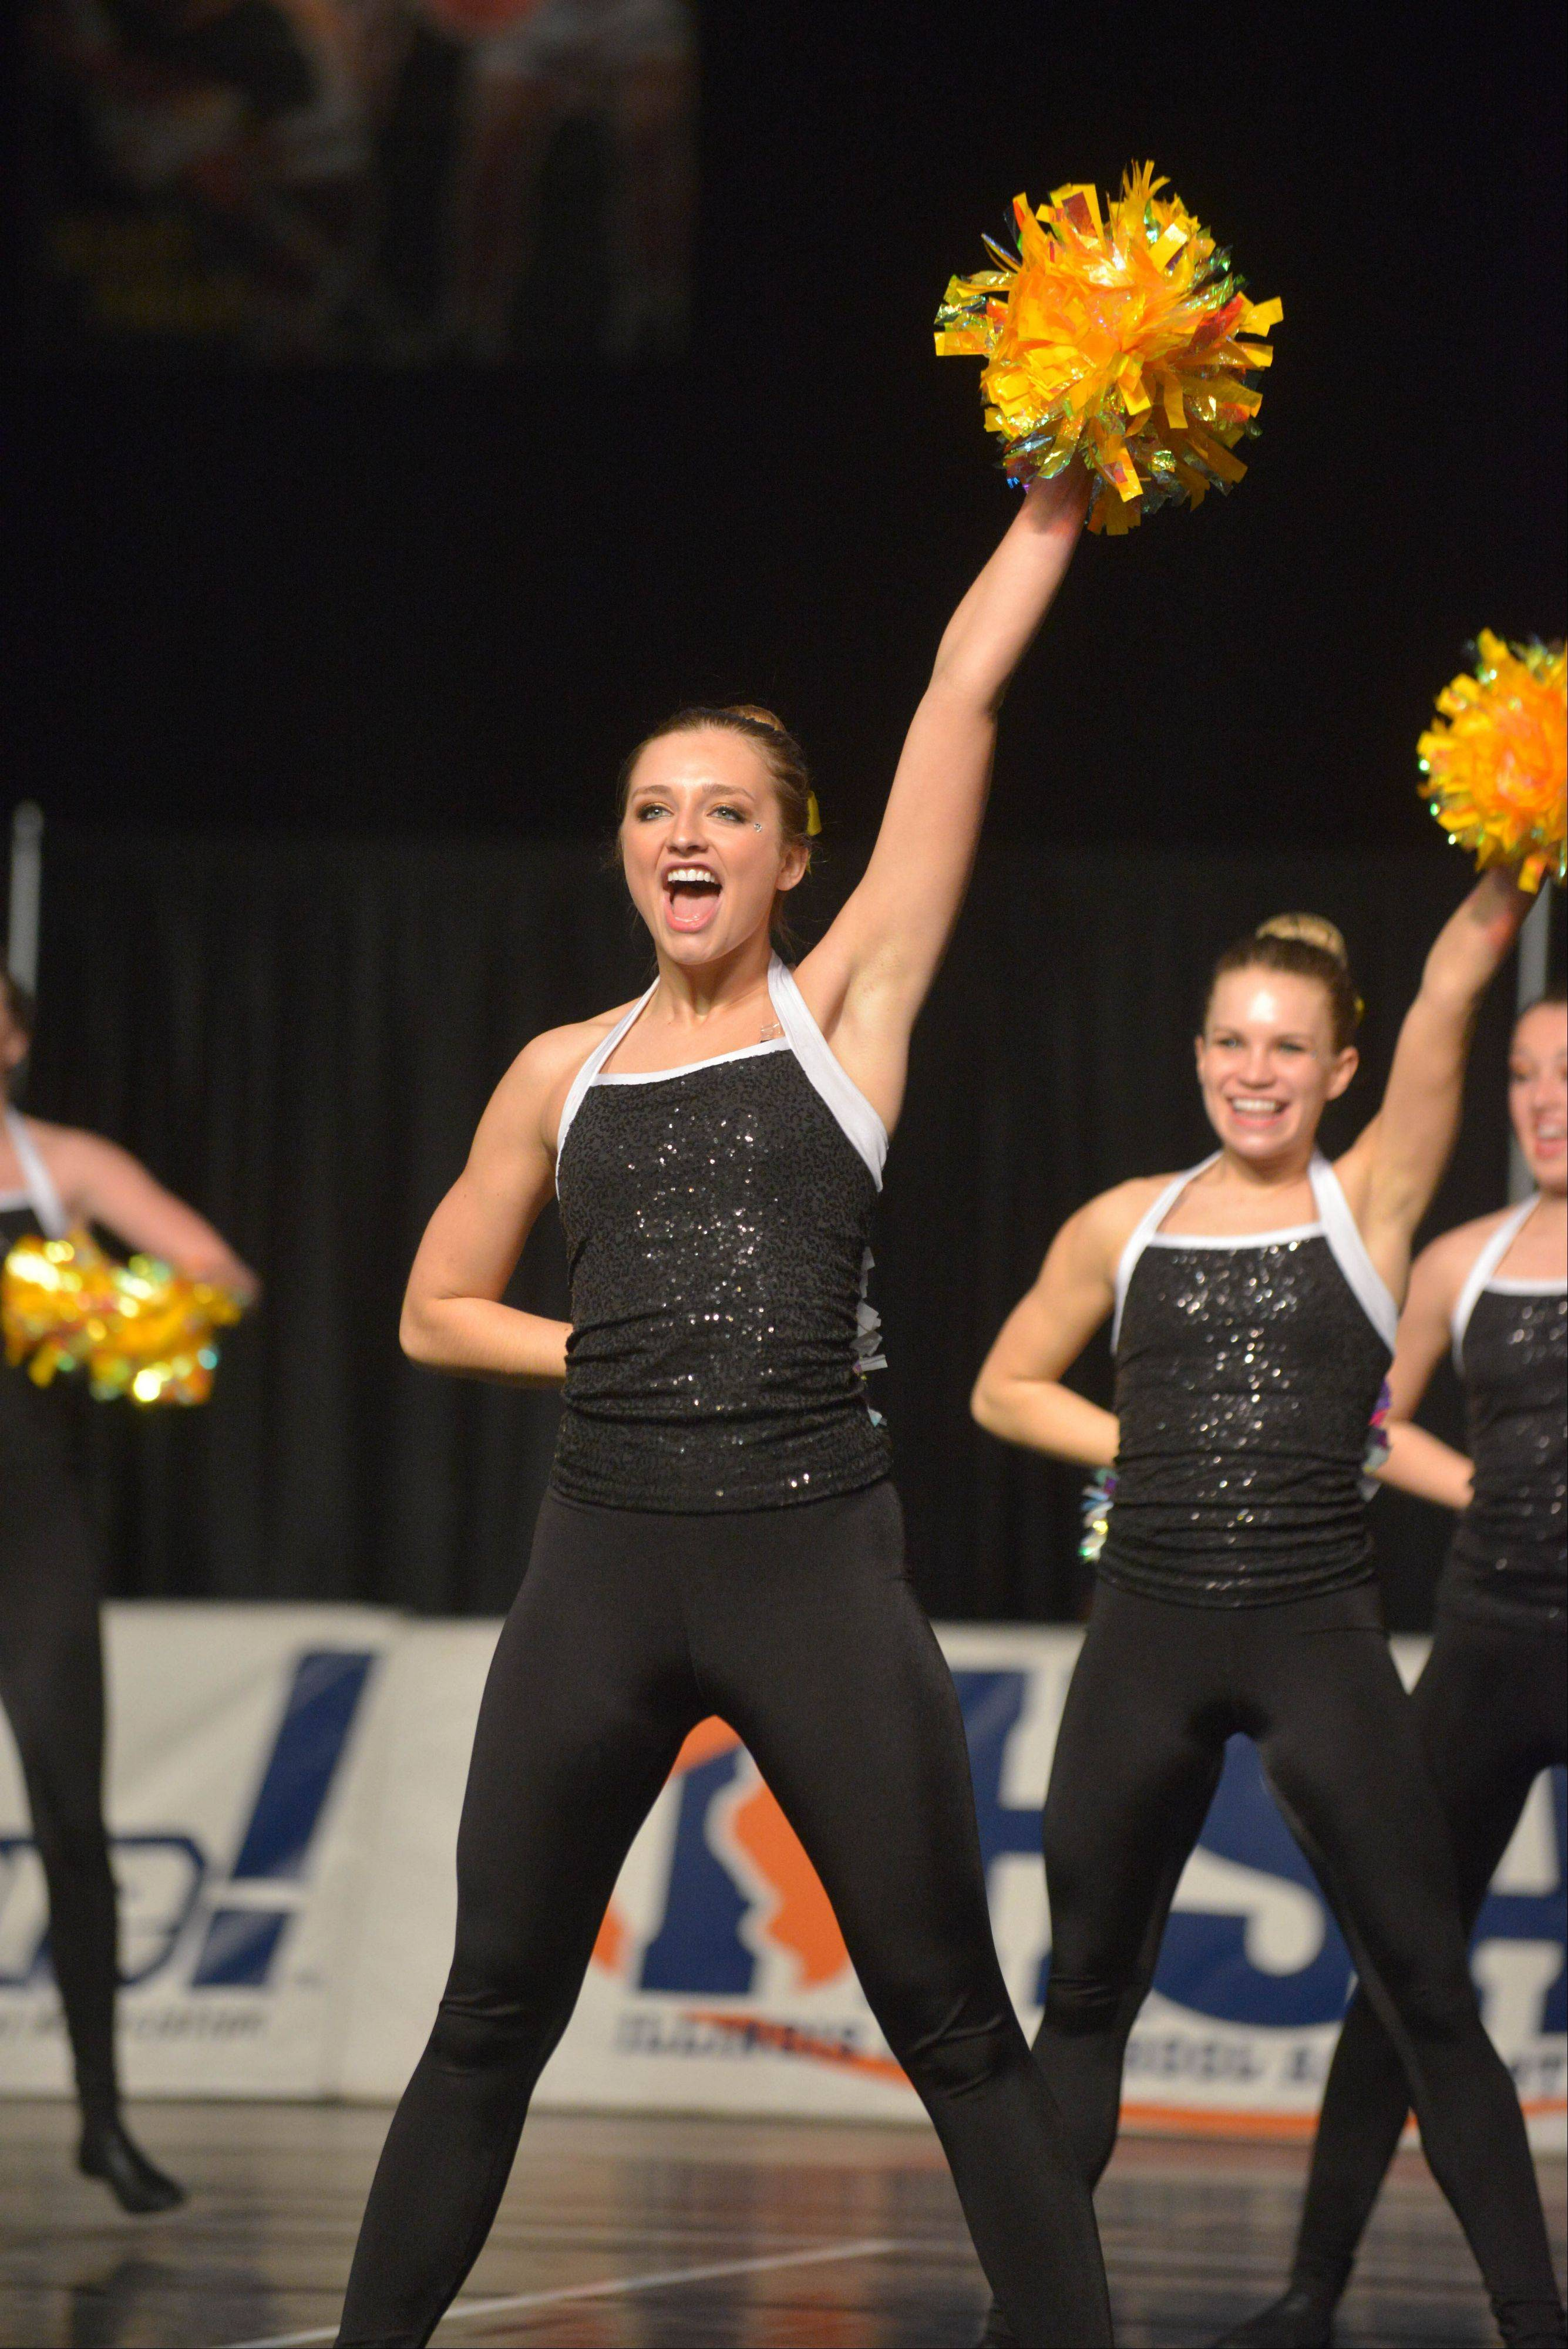 Crystal Lake Central took part in the IHSA Dance State Final at U.S. Cellular Coliseum in Bloomington Saturday. 90 teams vied for state champion at this event.